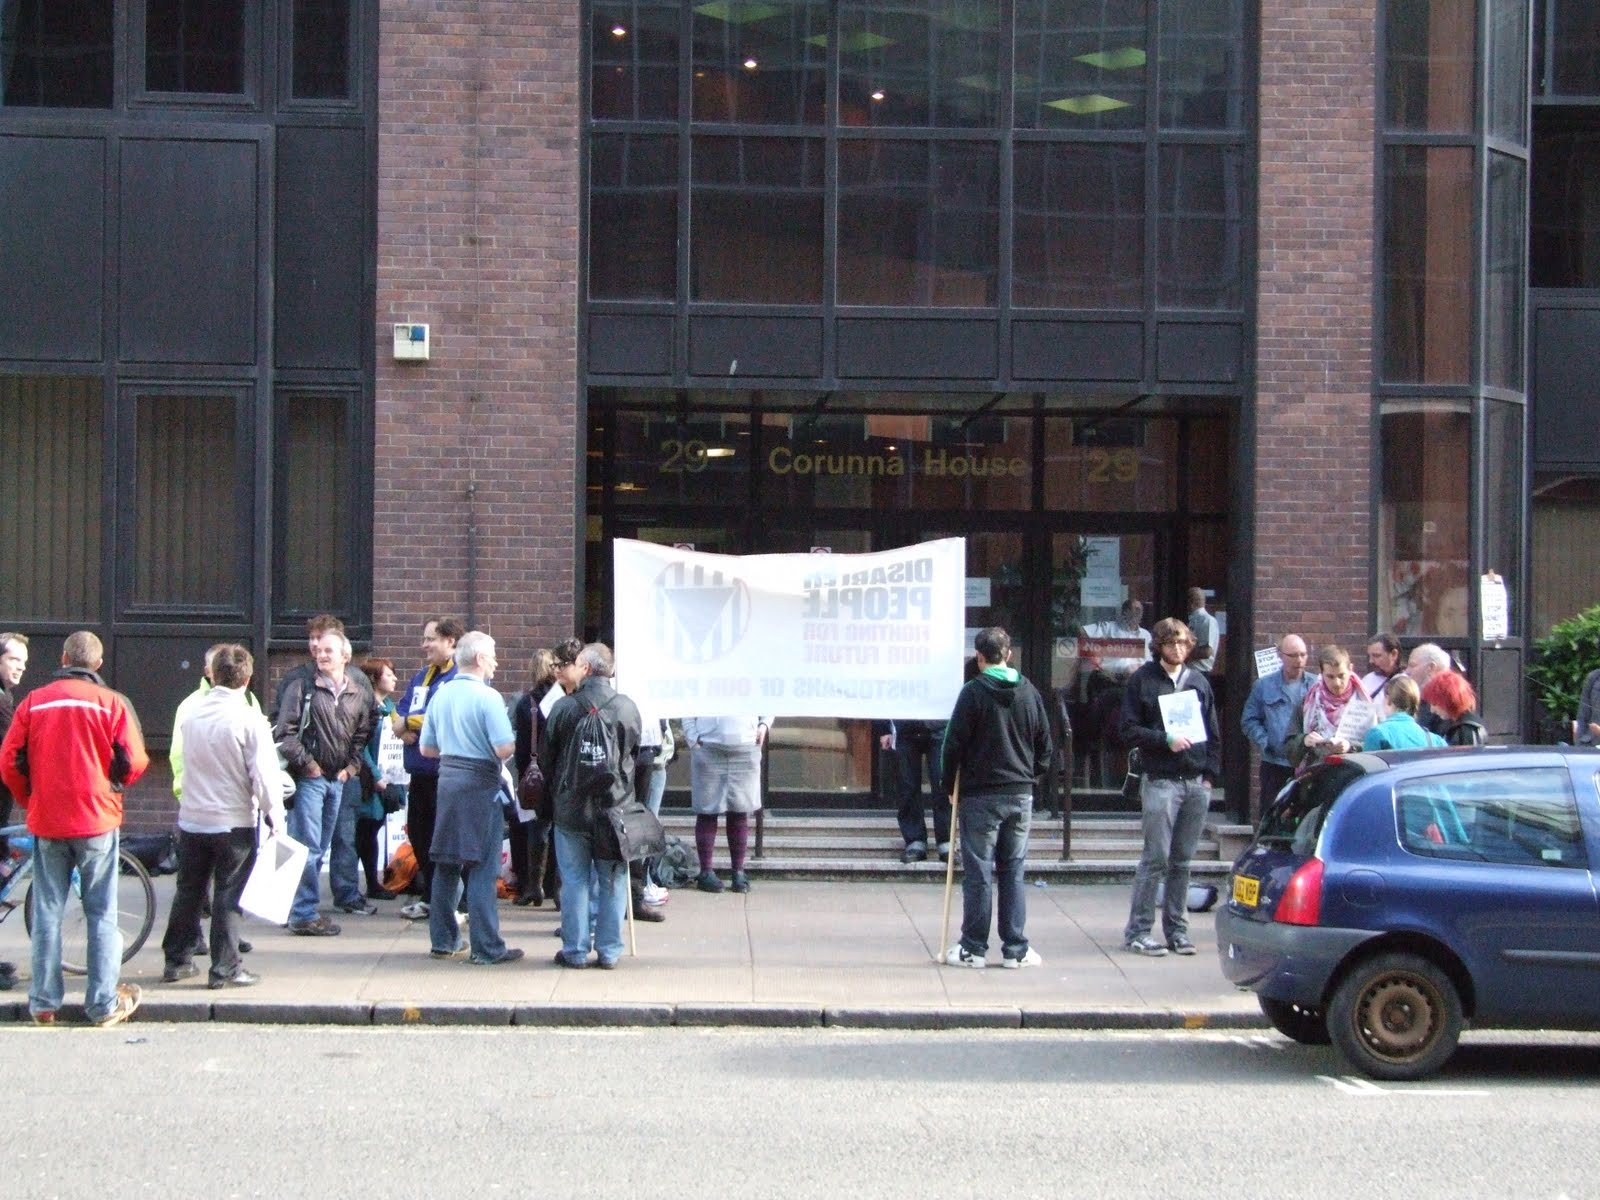 Atos picket at Glasgow